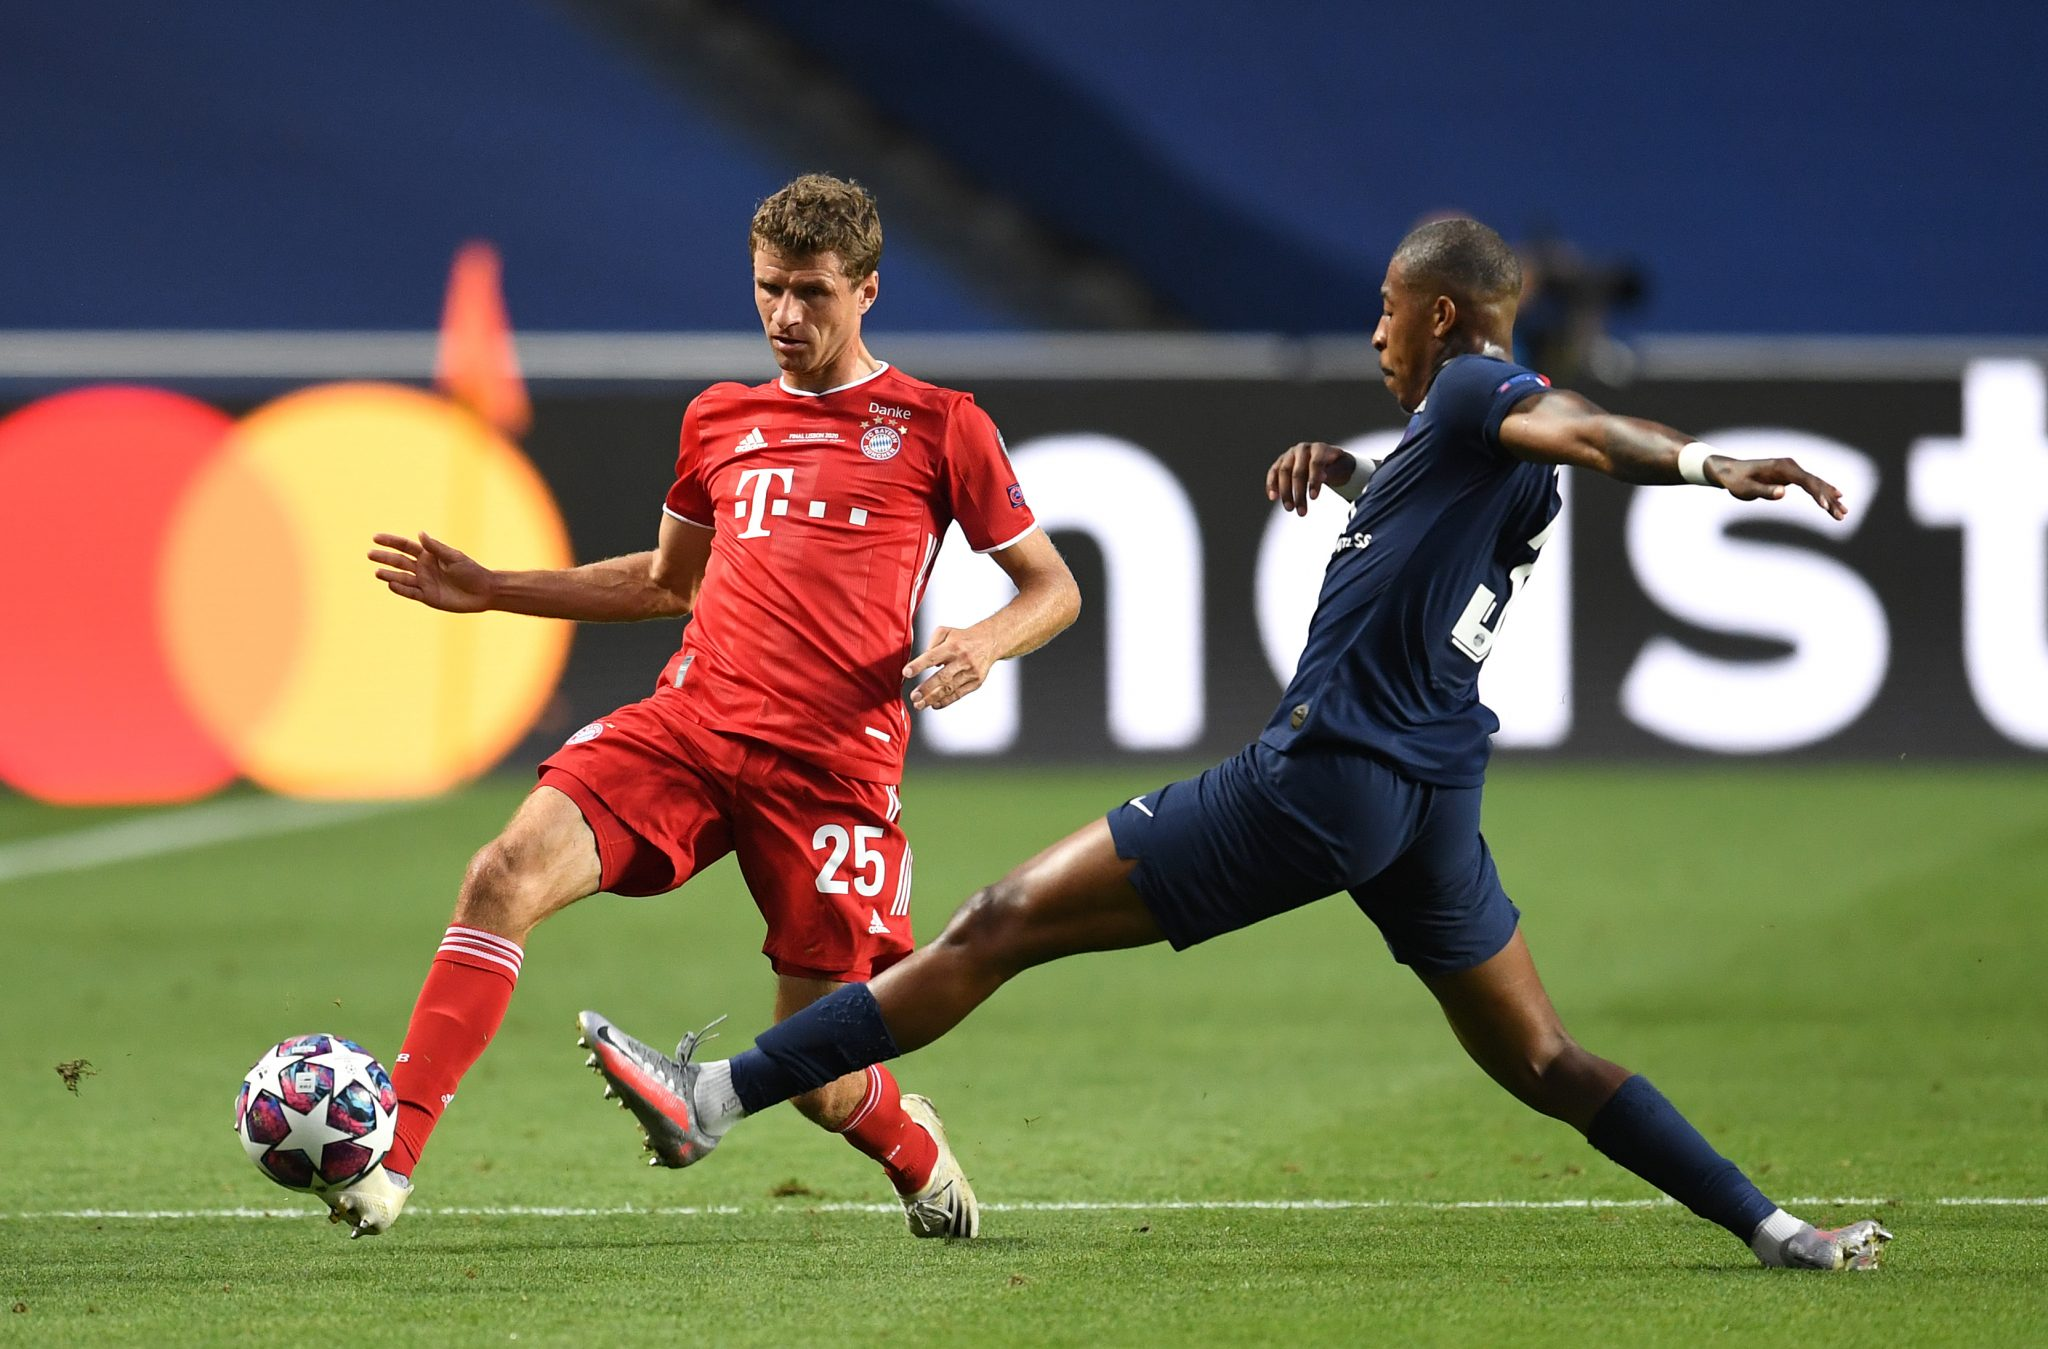 The perfect Thomas Muller first touch that dismantled PSG